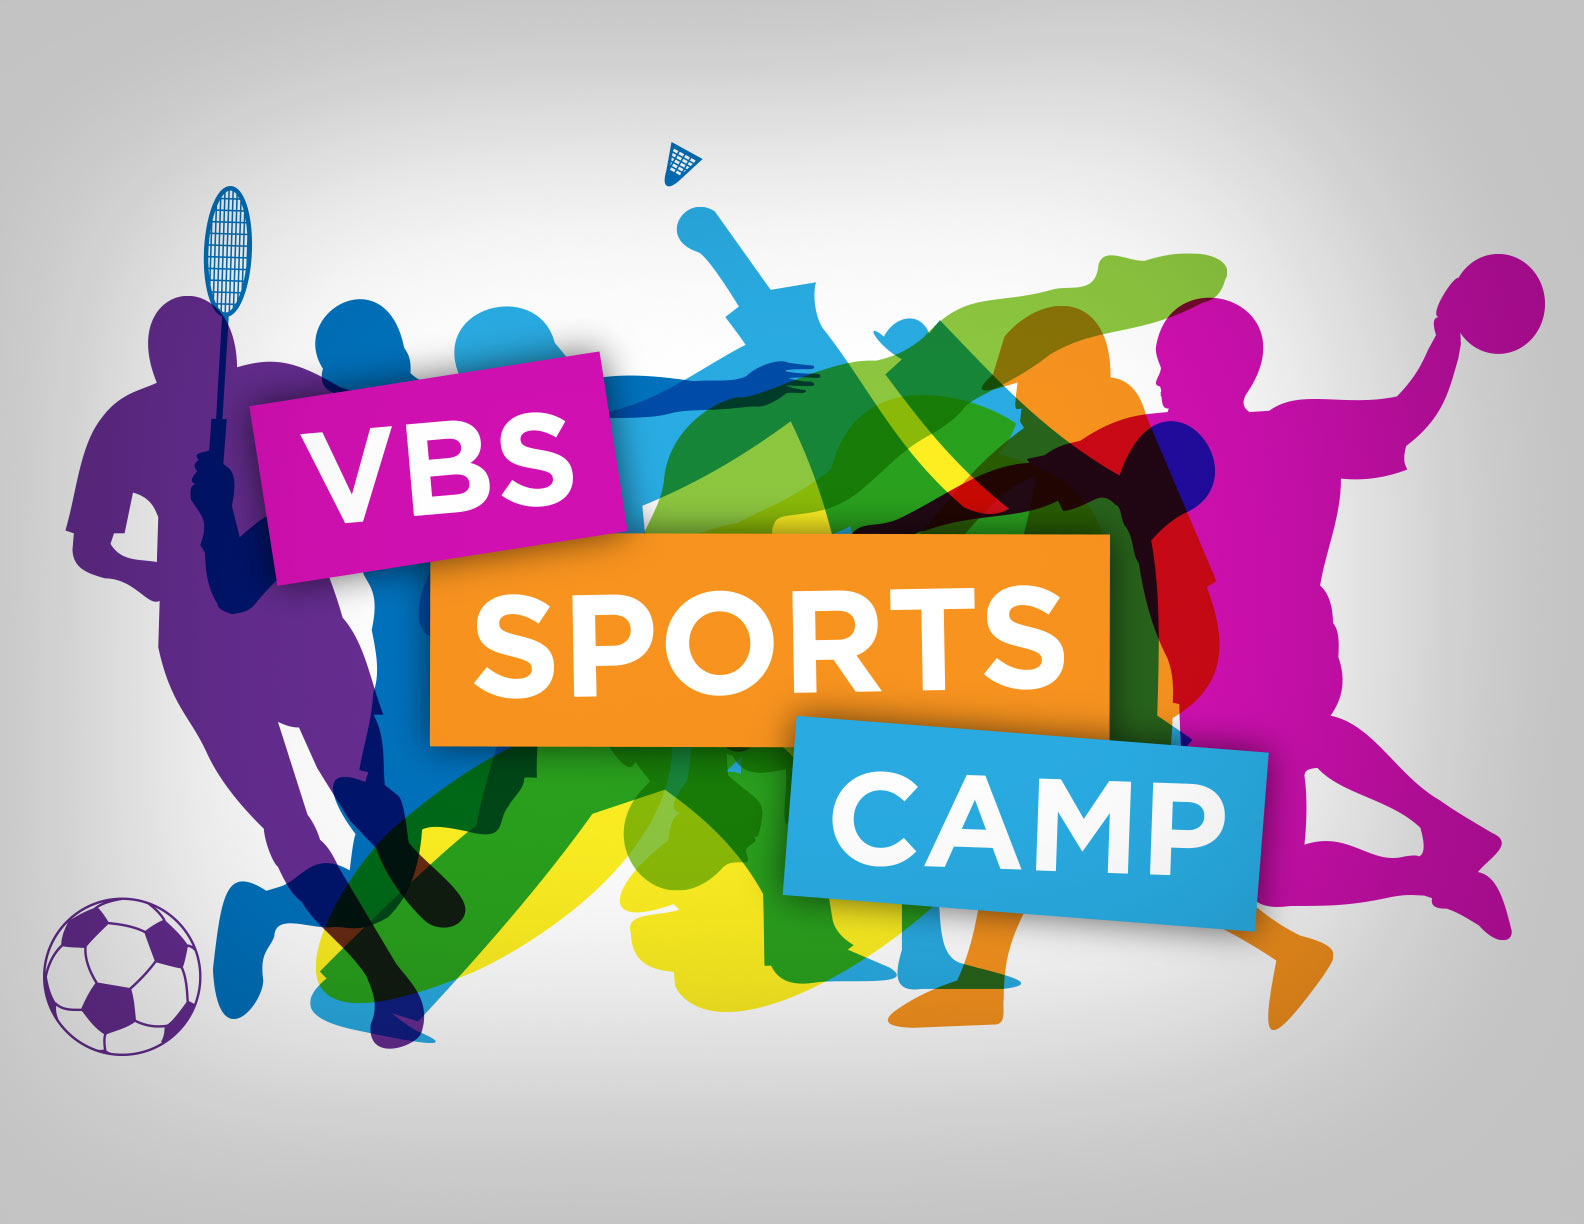 vbs-sports-camp-event